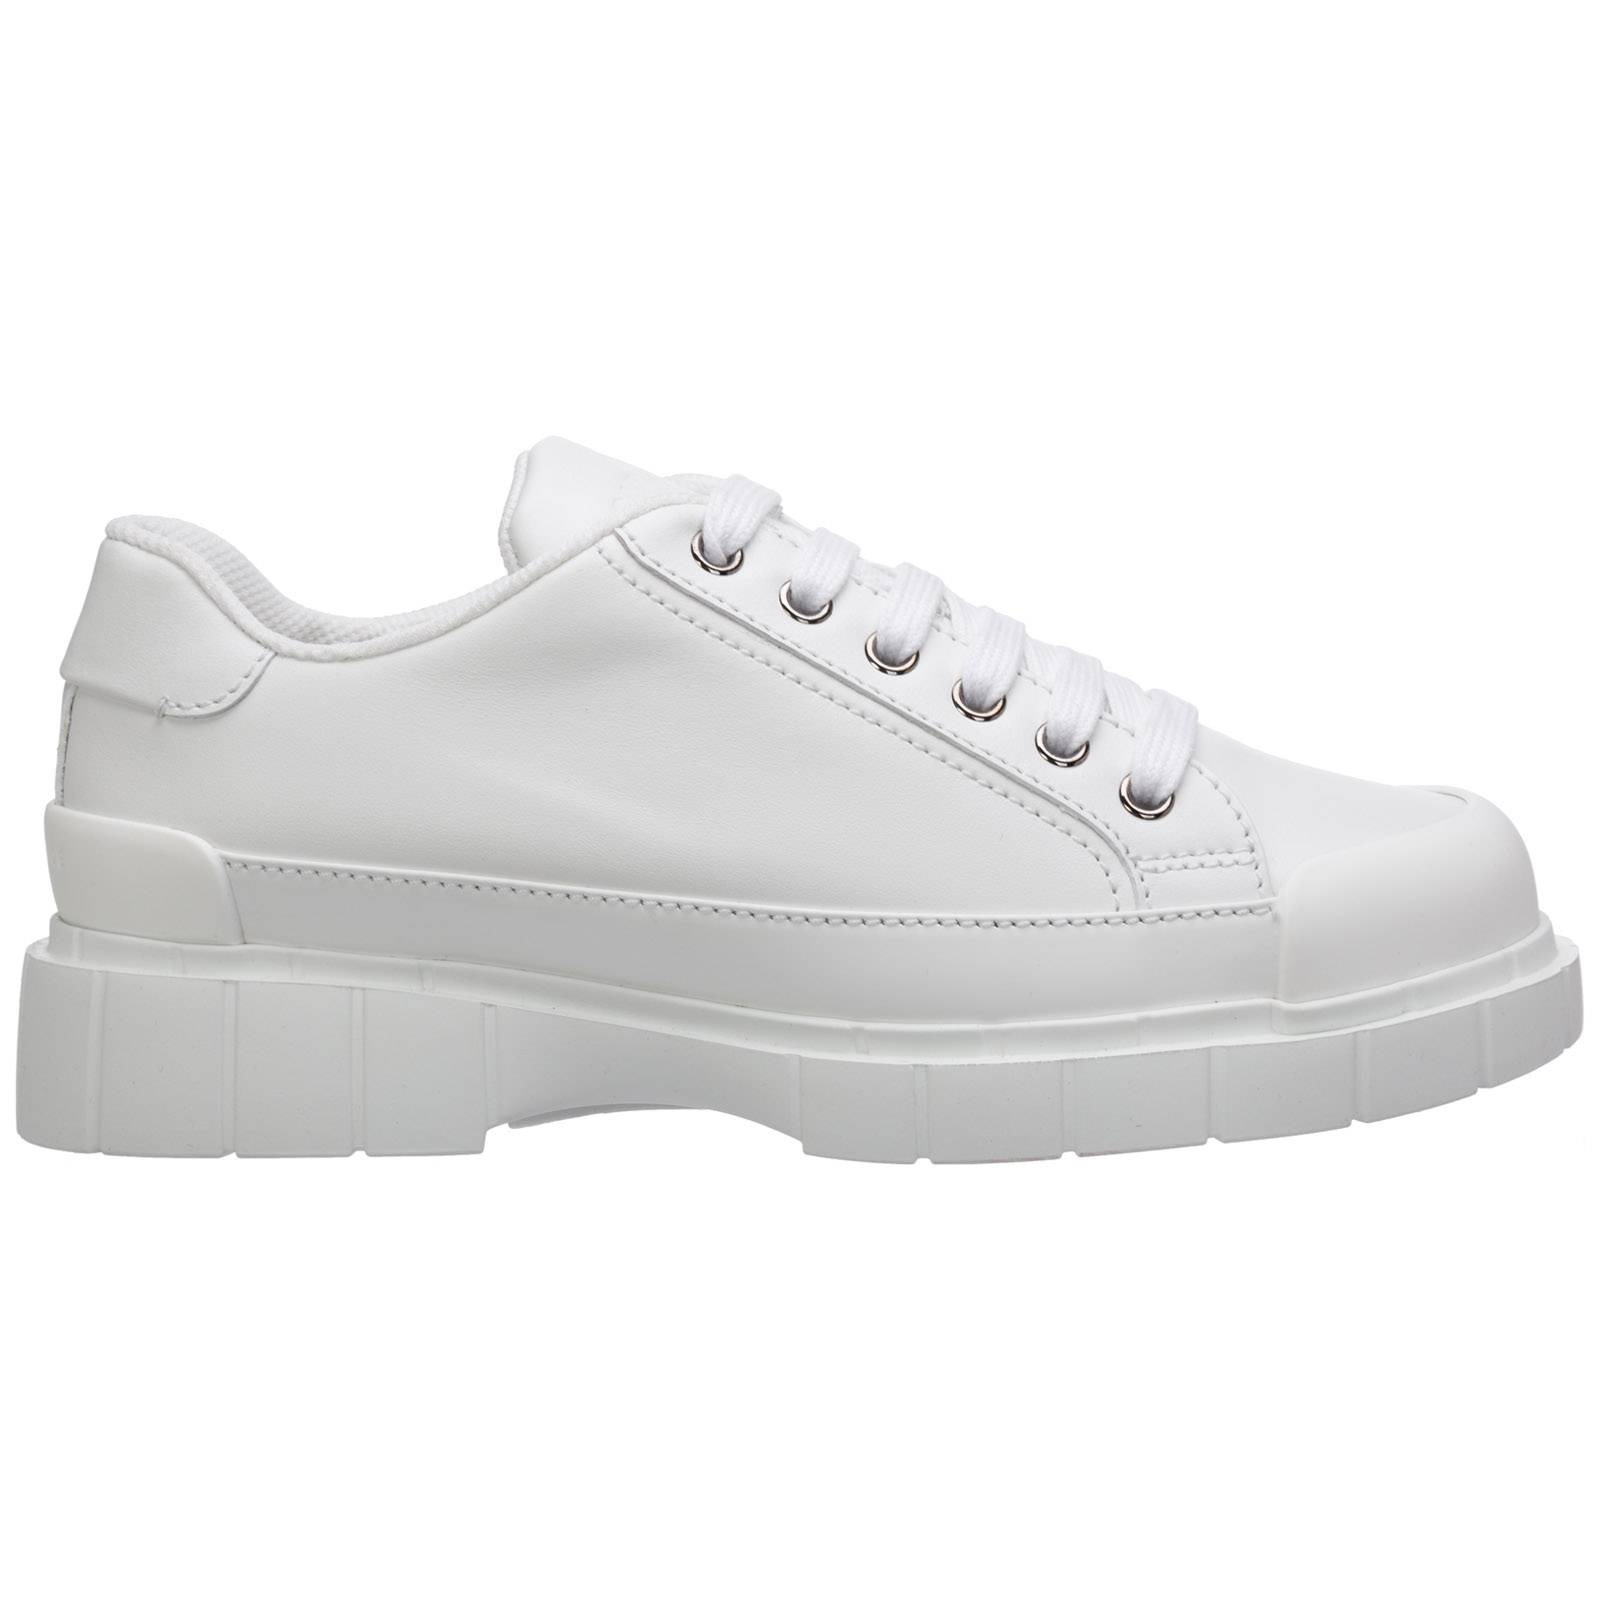 Car Shoe Women's shoes leather trainers sneakers  - White - Size: 37